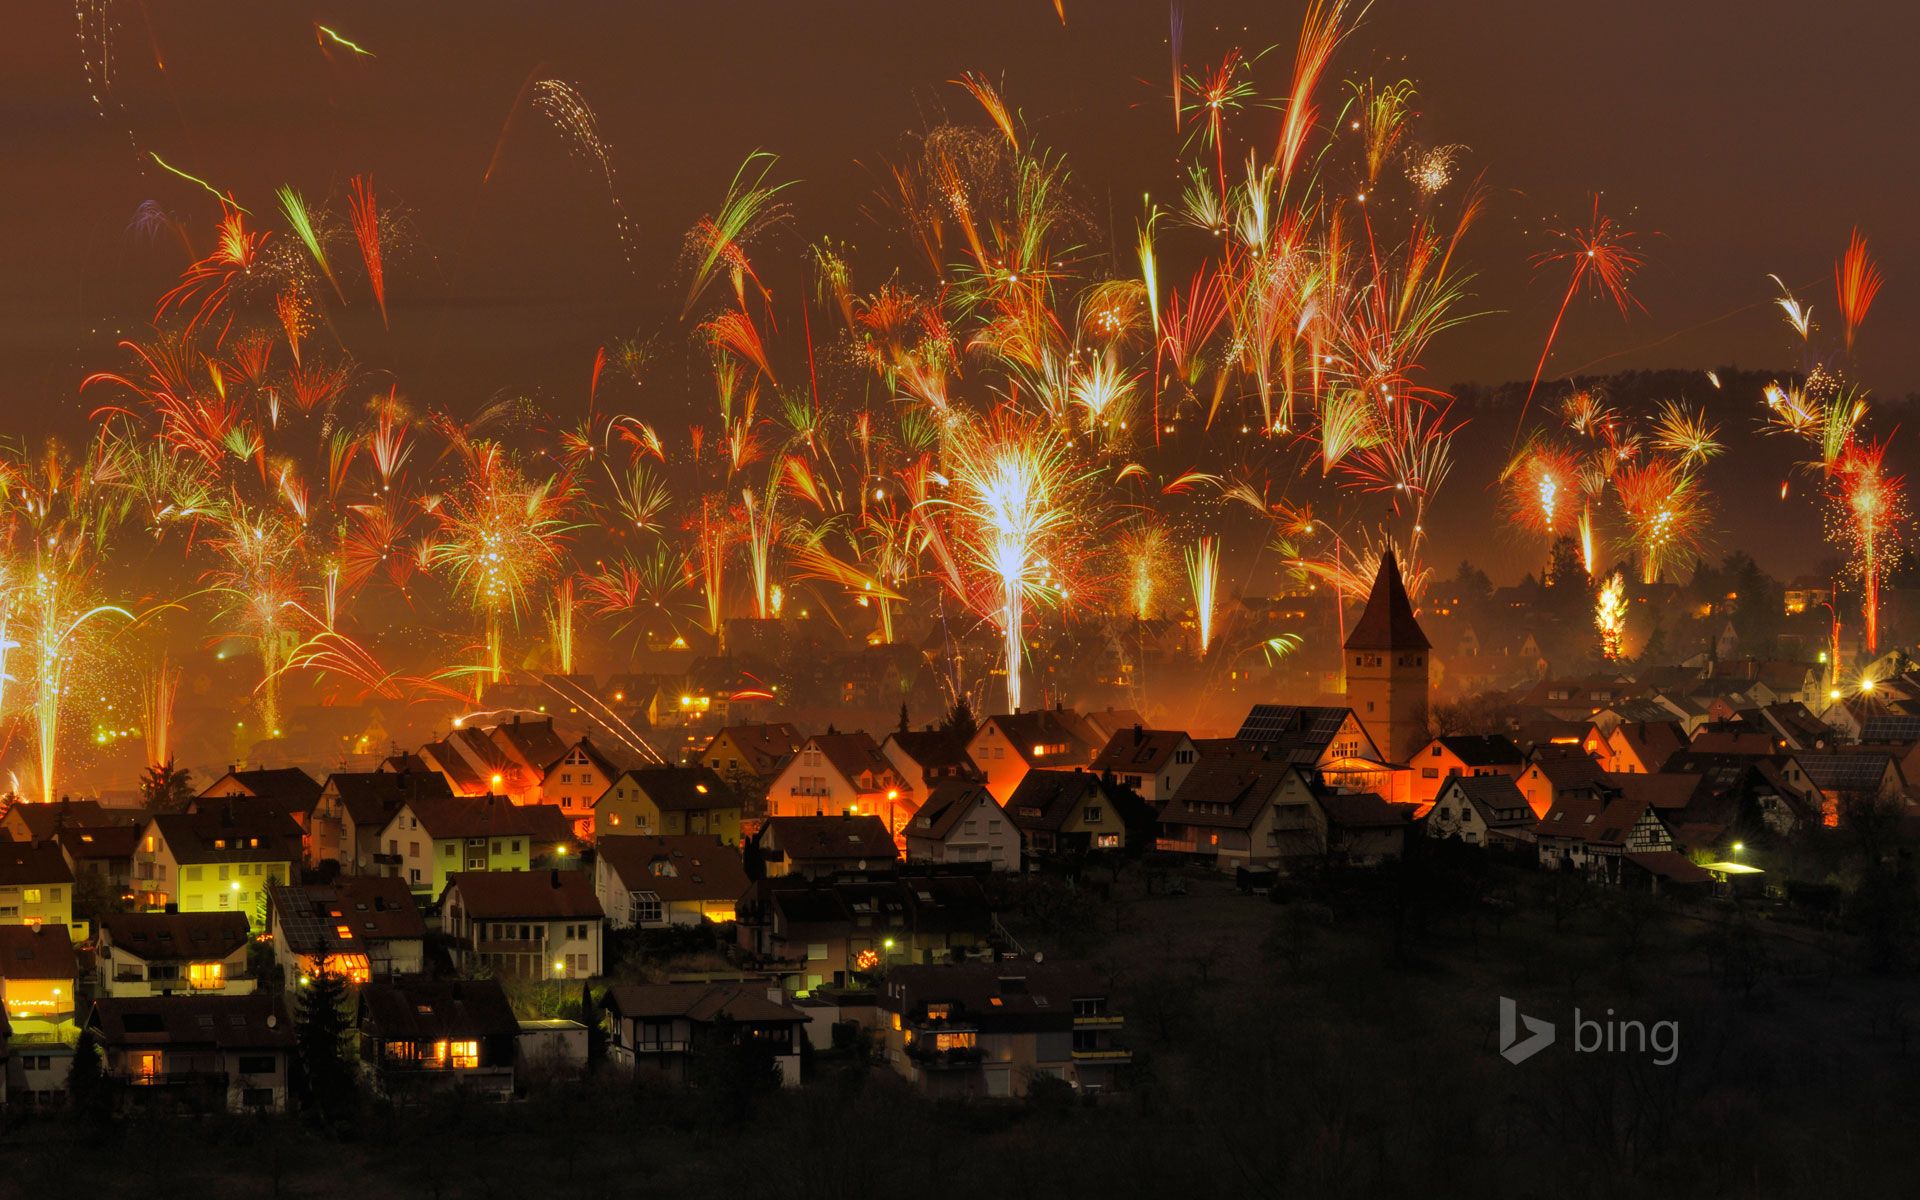 New Year's Eve fireworks in Korb, Rems-Murr-Kreis, Germany